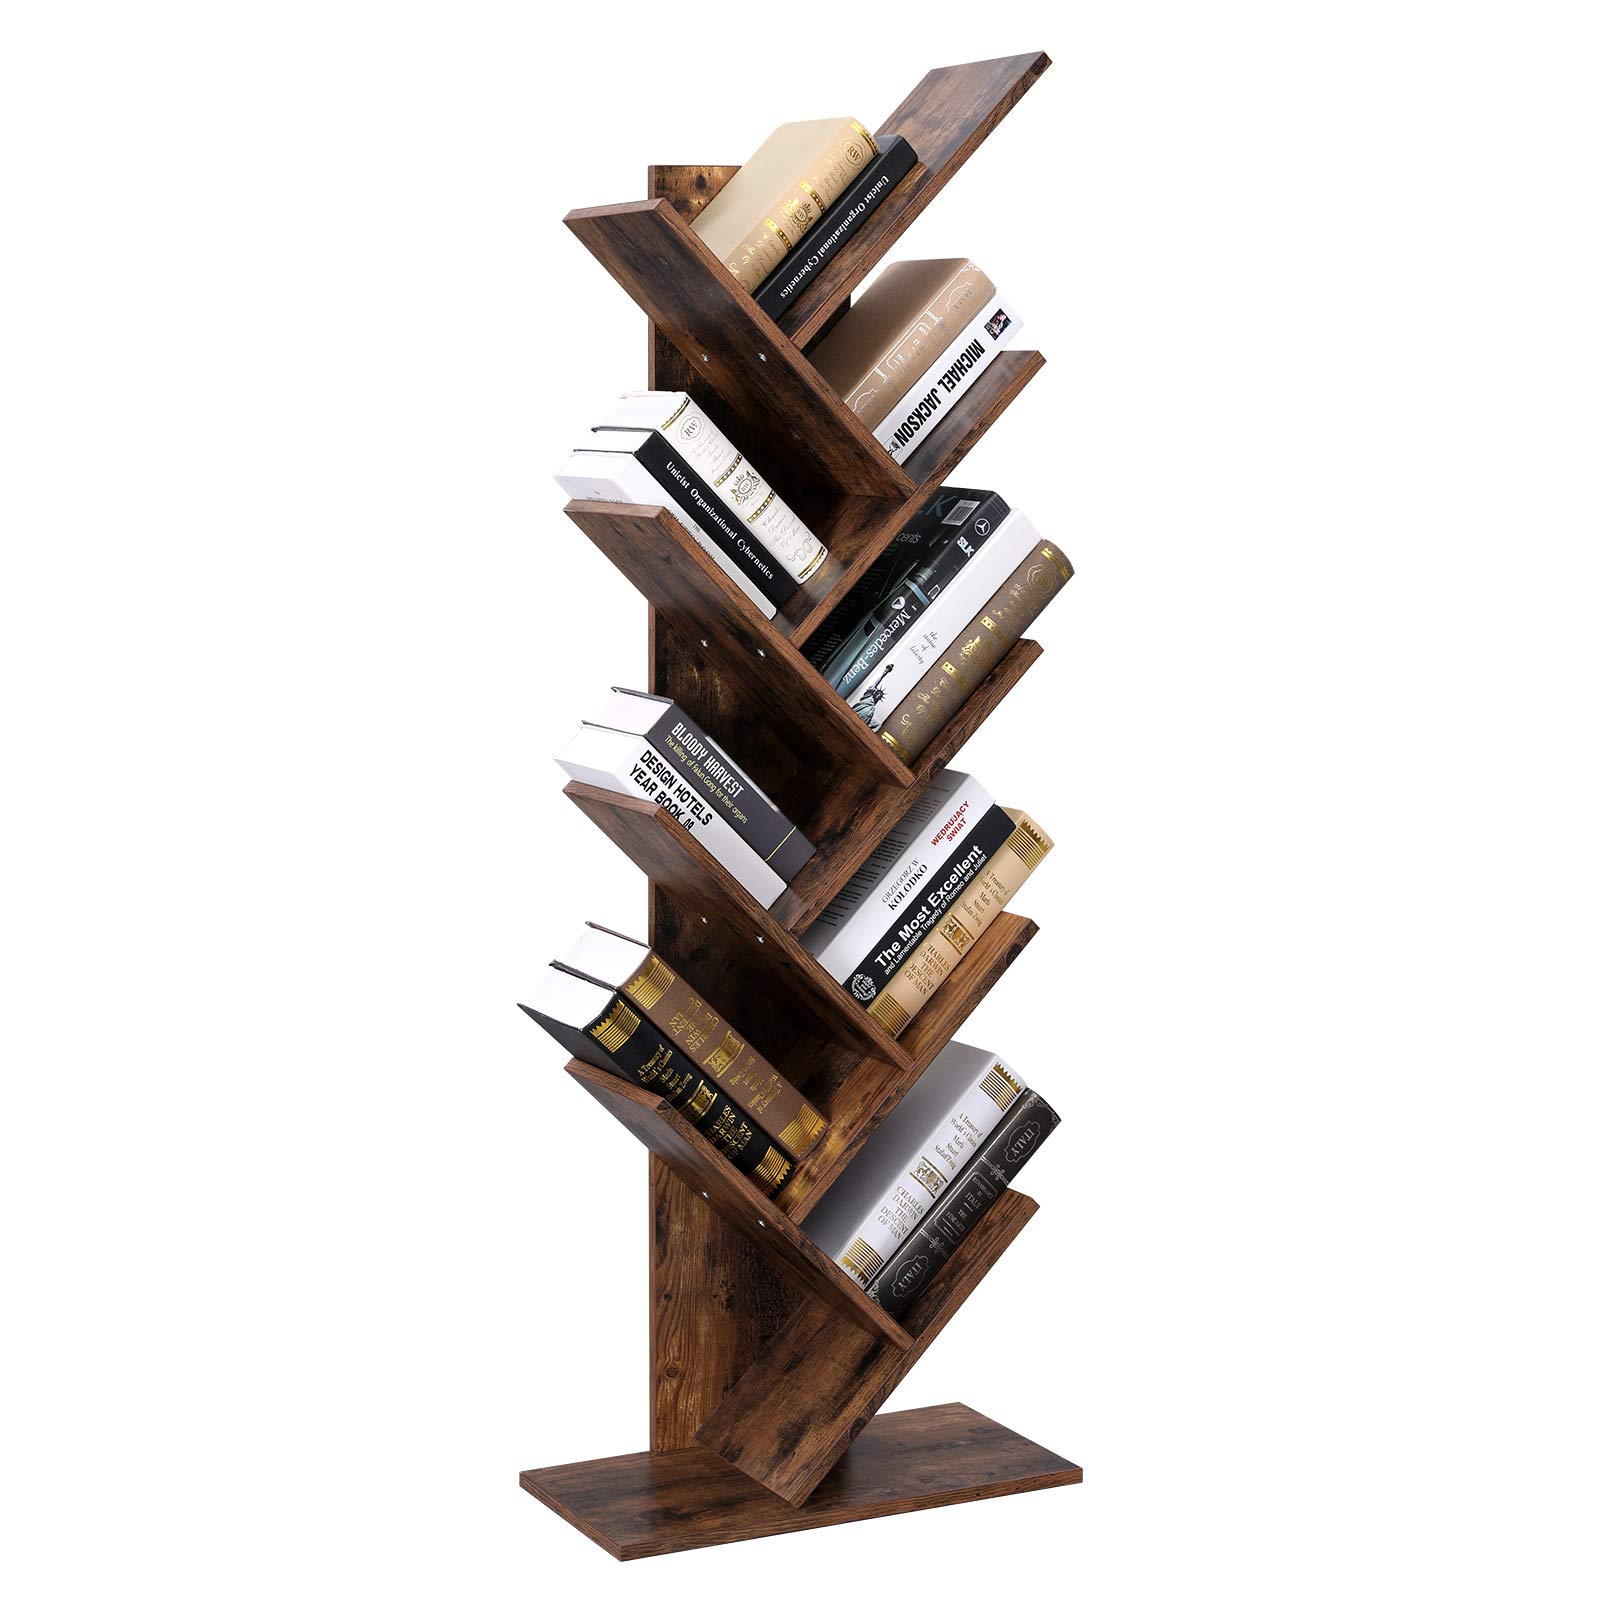 VASAGLE Tree Bookshelf, 8-Tier Floor Standing Bookcase, with Wooden Shelves for Living Room, Home Office, Rustic Brown ULBC11BX by VASAGLE (Image #5)